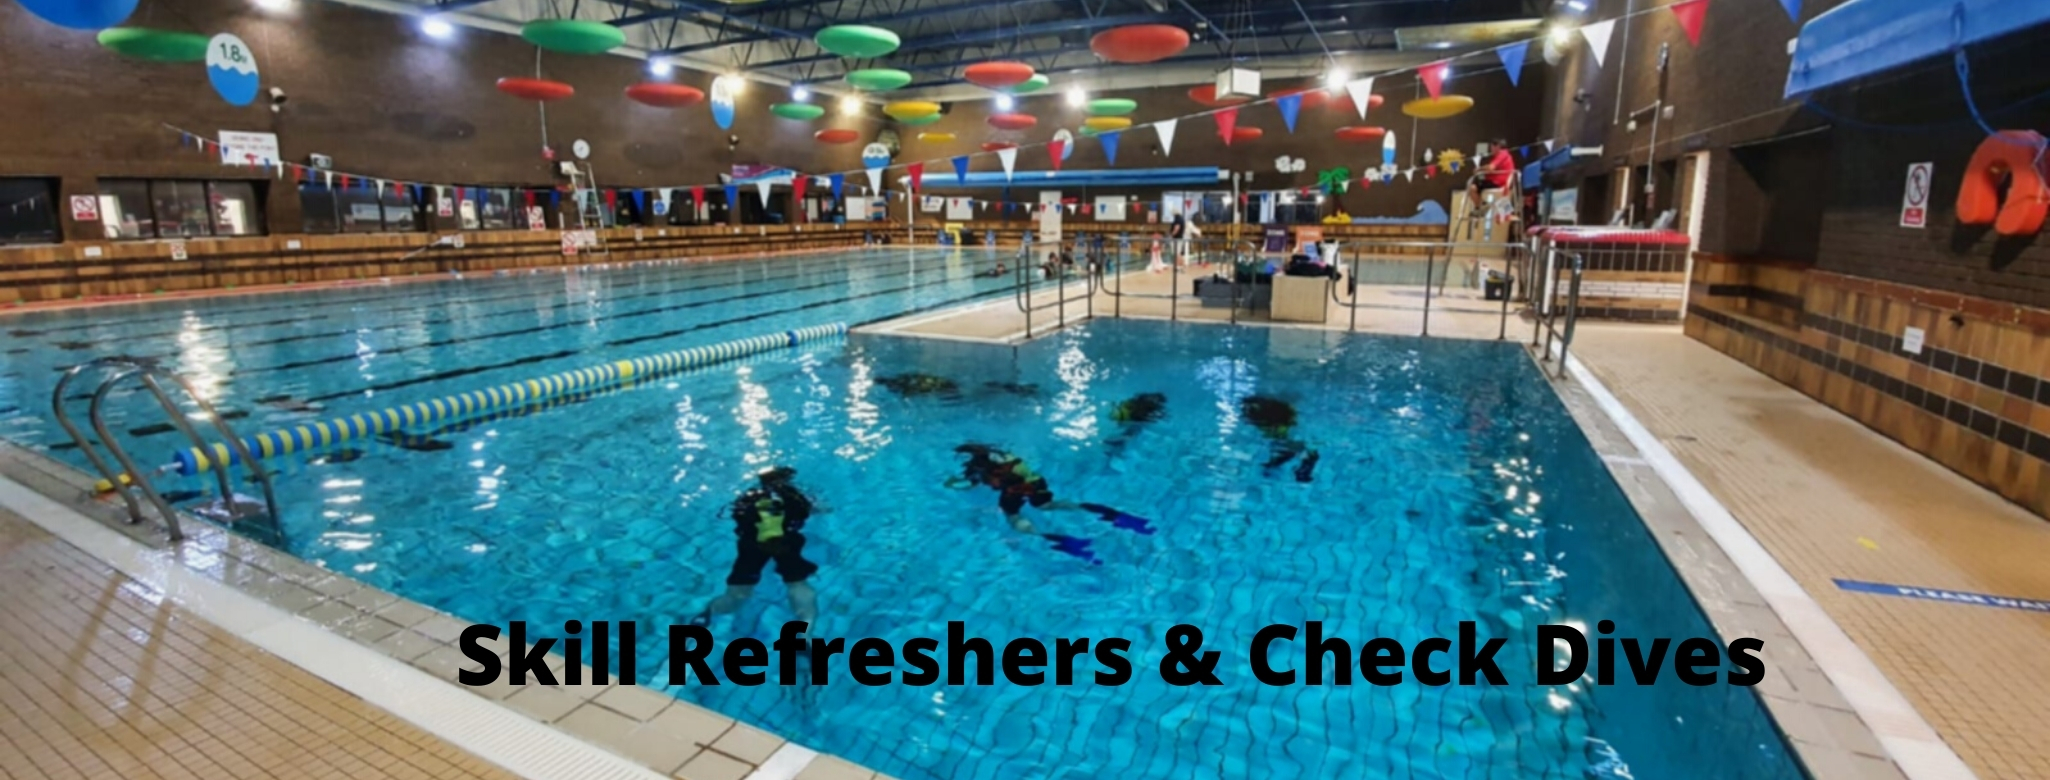 Diving Skill Refreshers & Check Dives